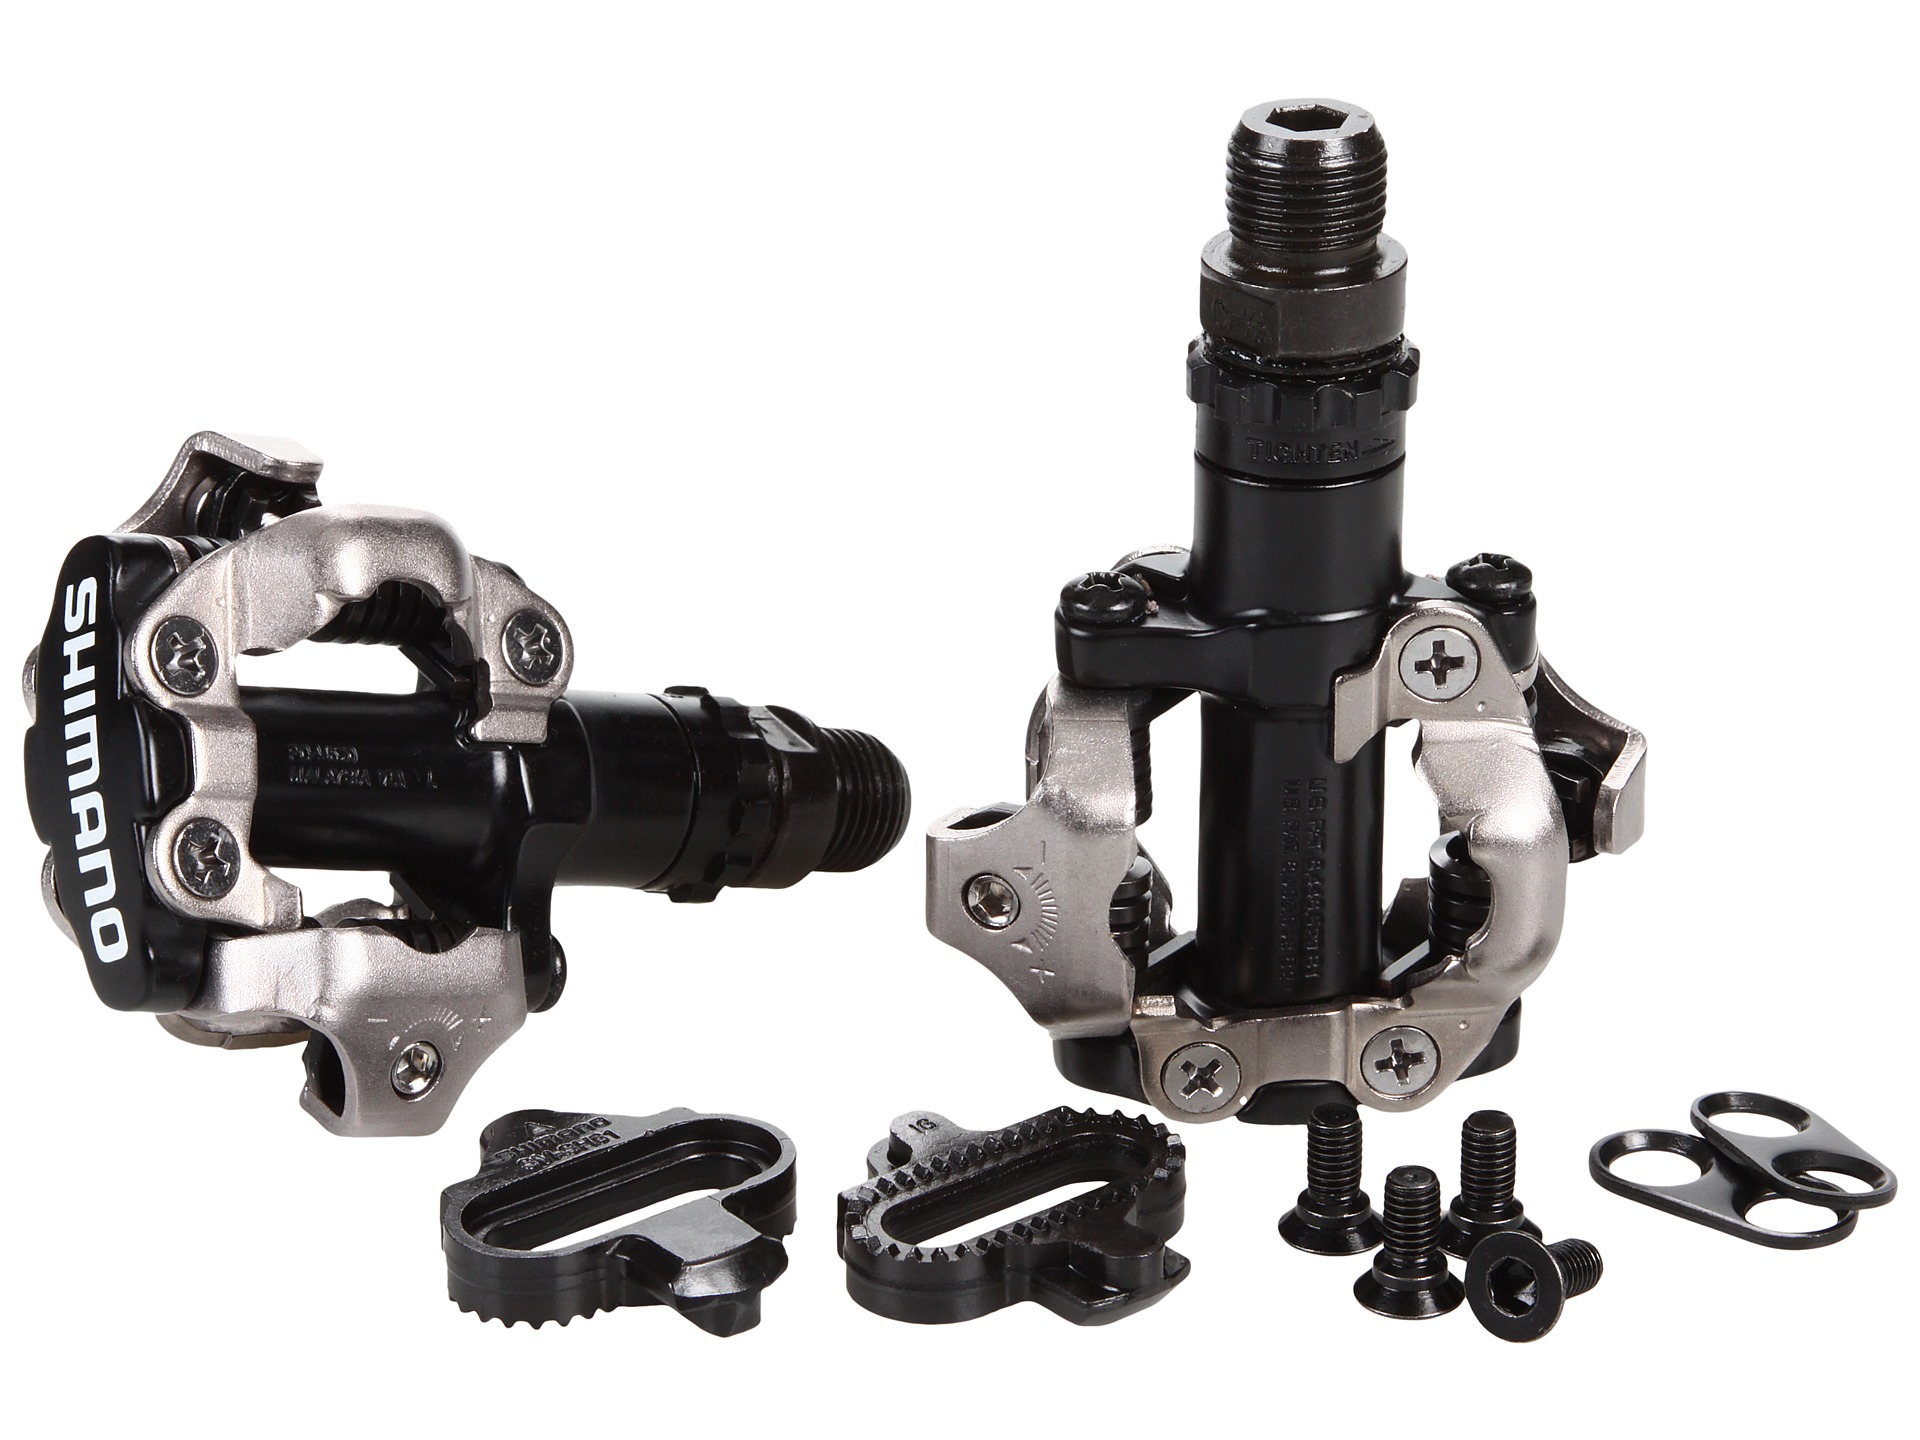 how to fix creaking mtb pedals